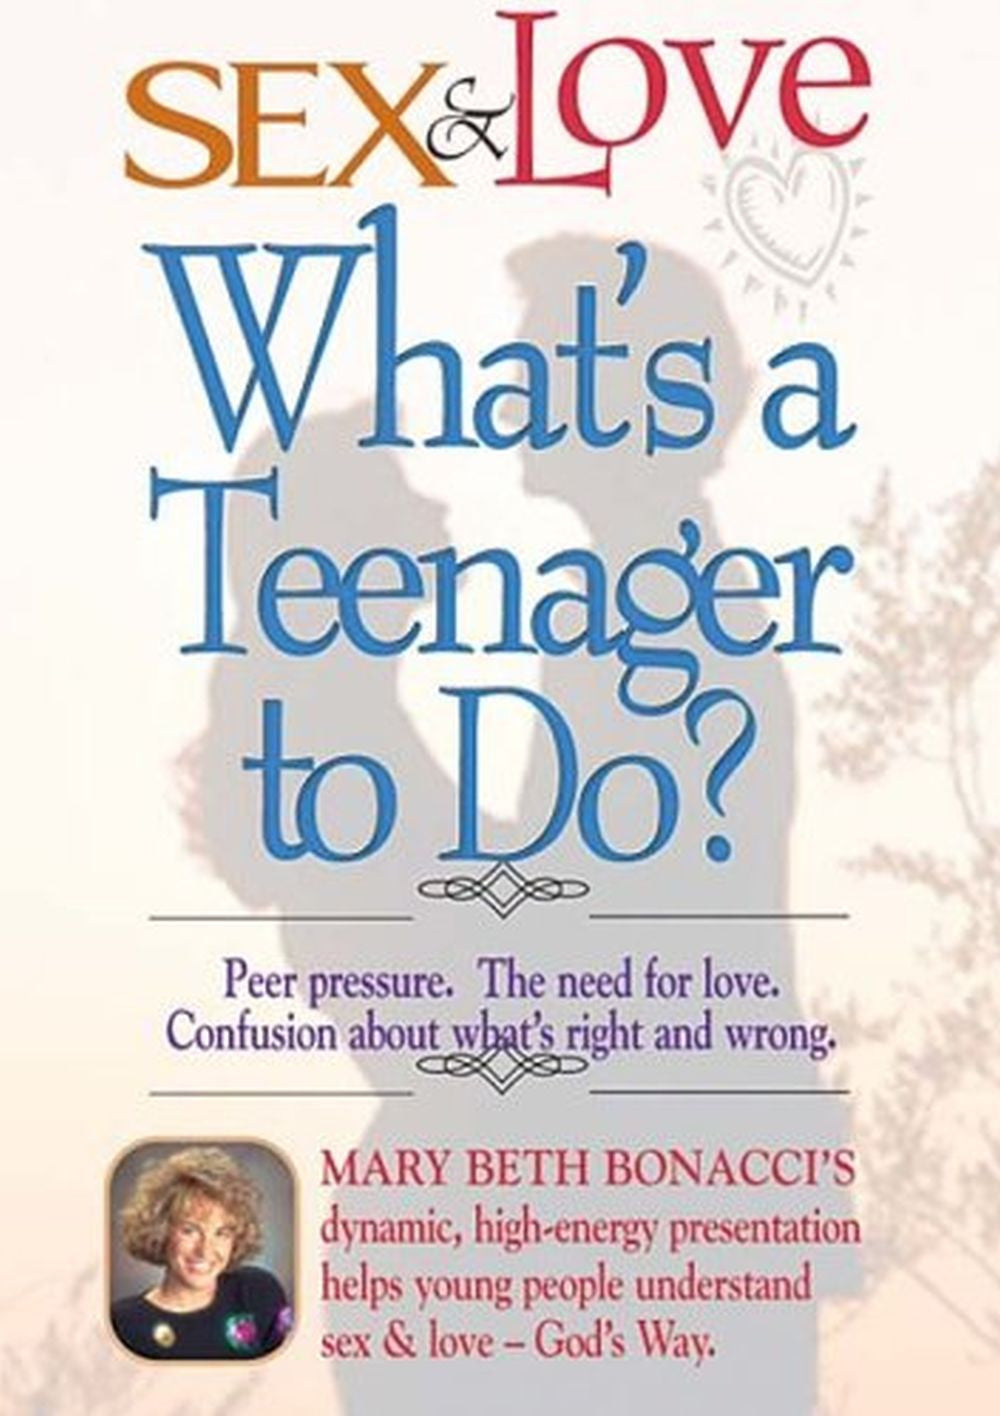 Sex & Love - What's A Teenager To Do DVD